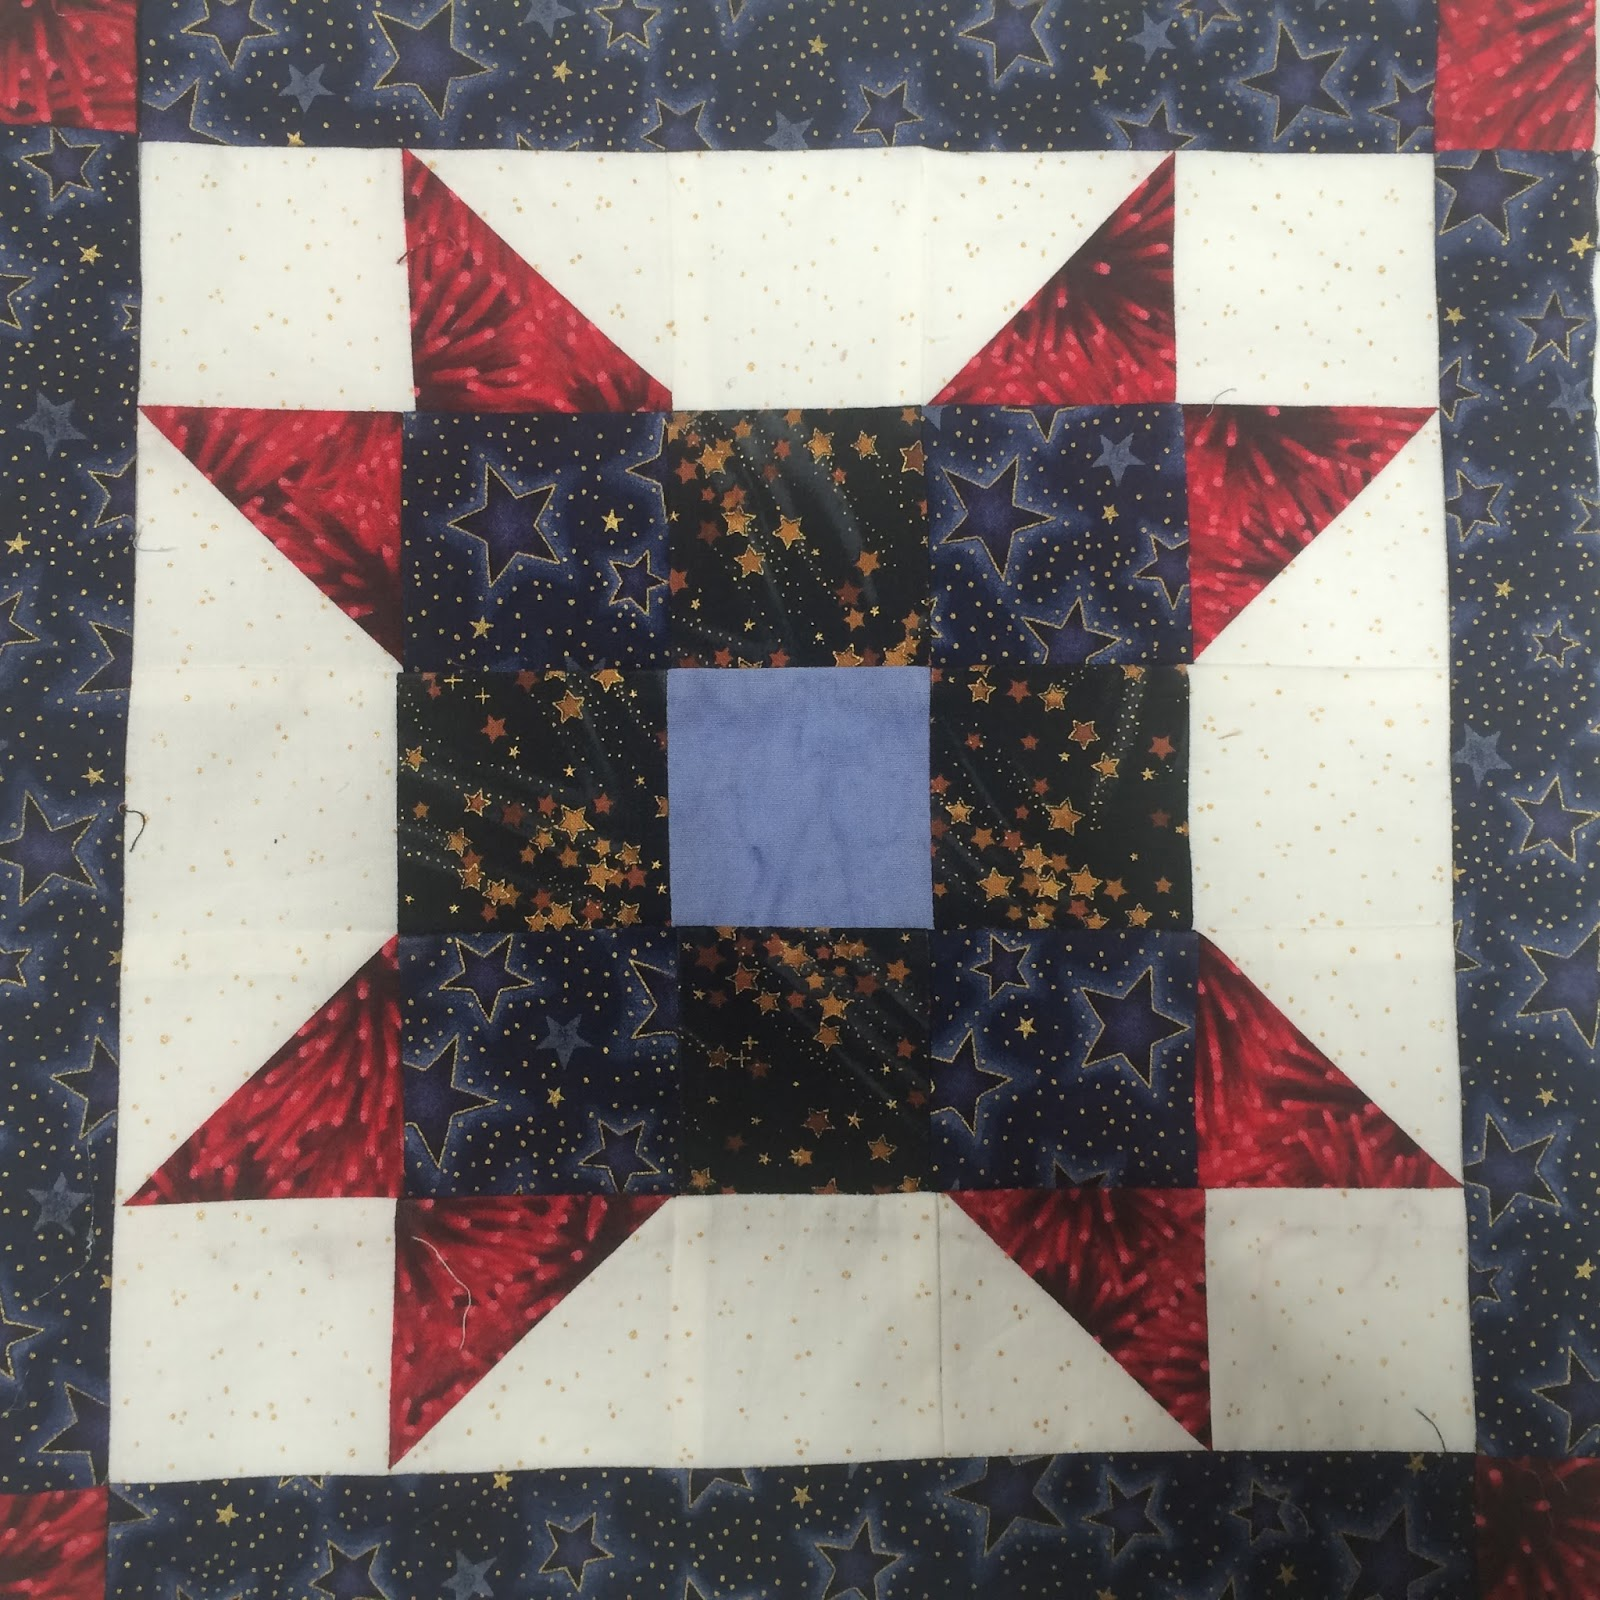 the quilt summary